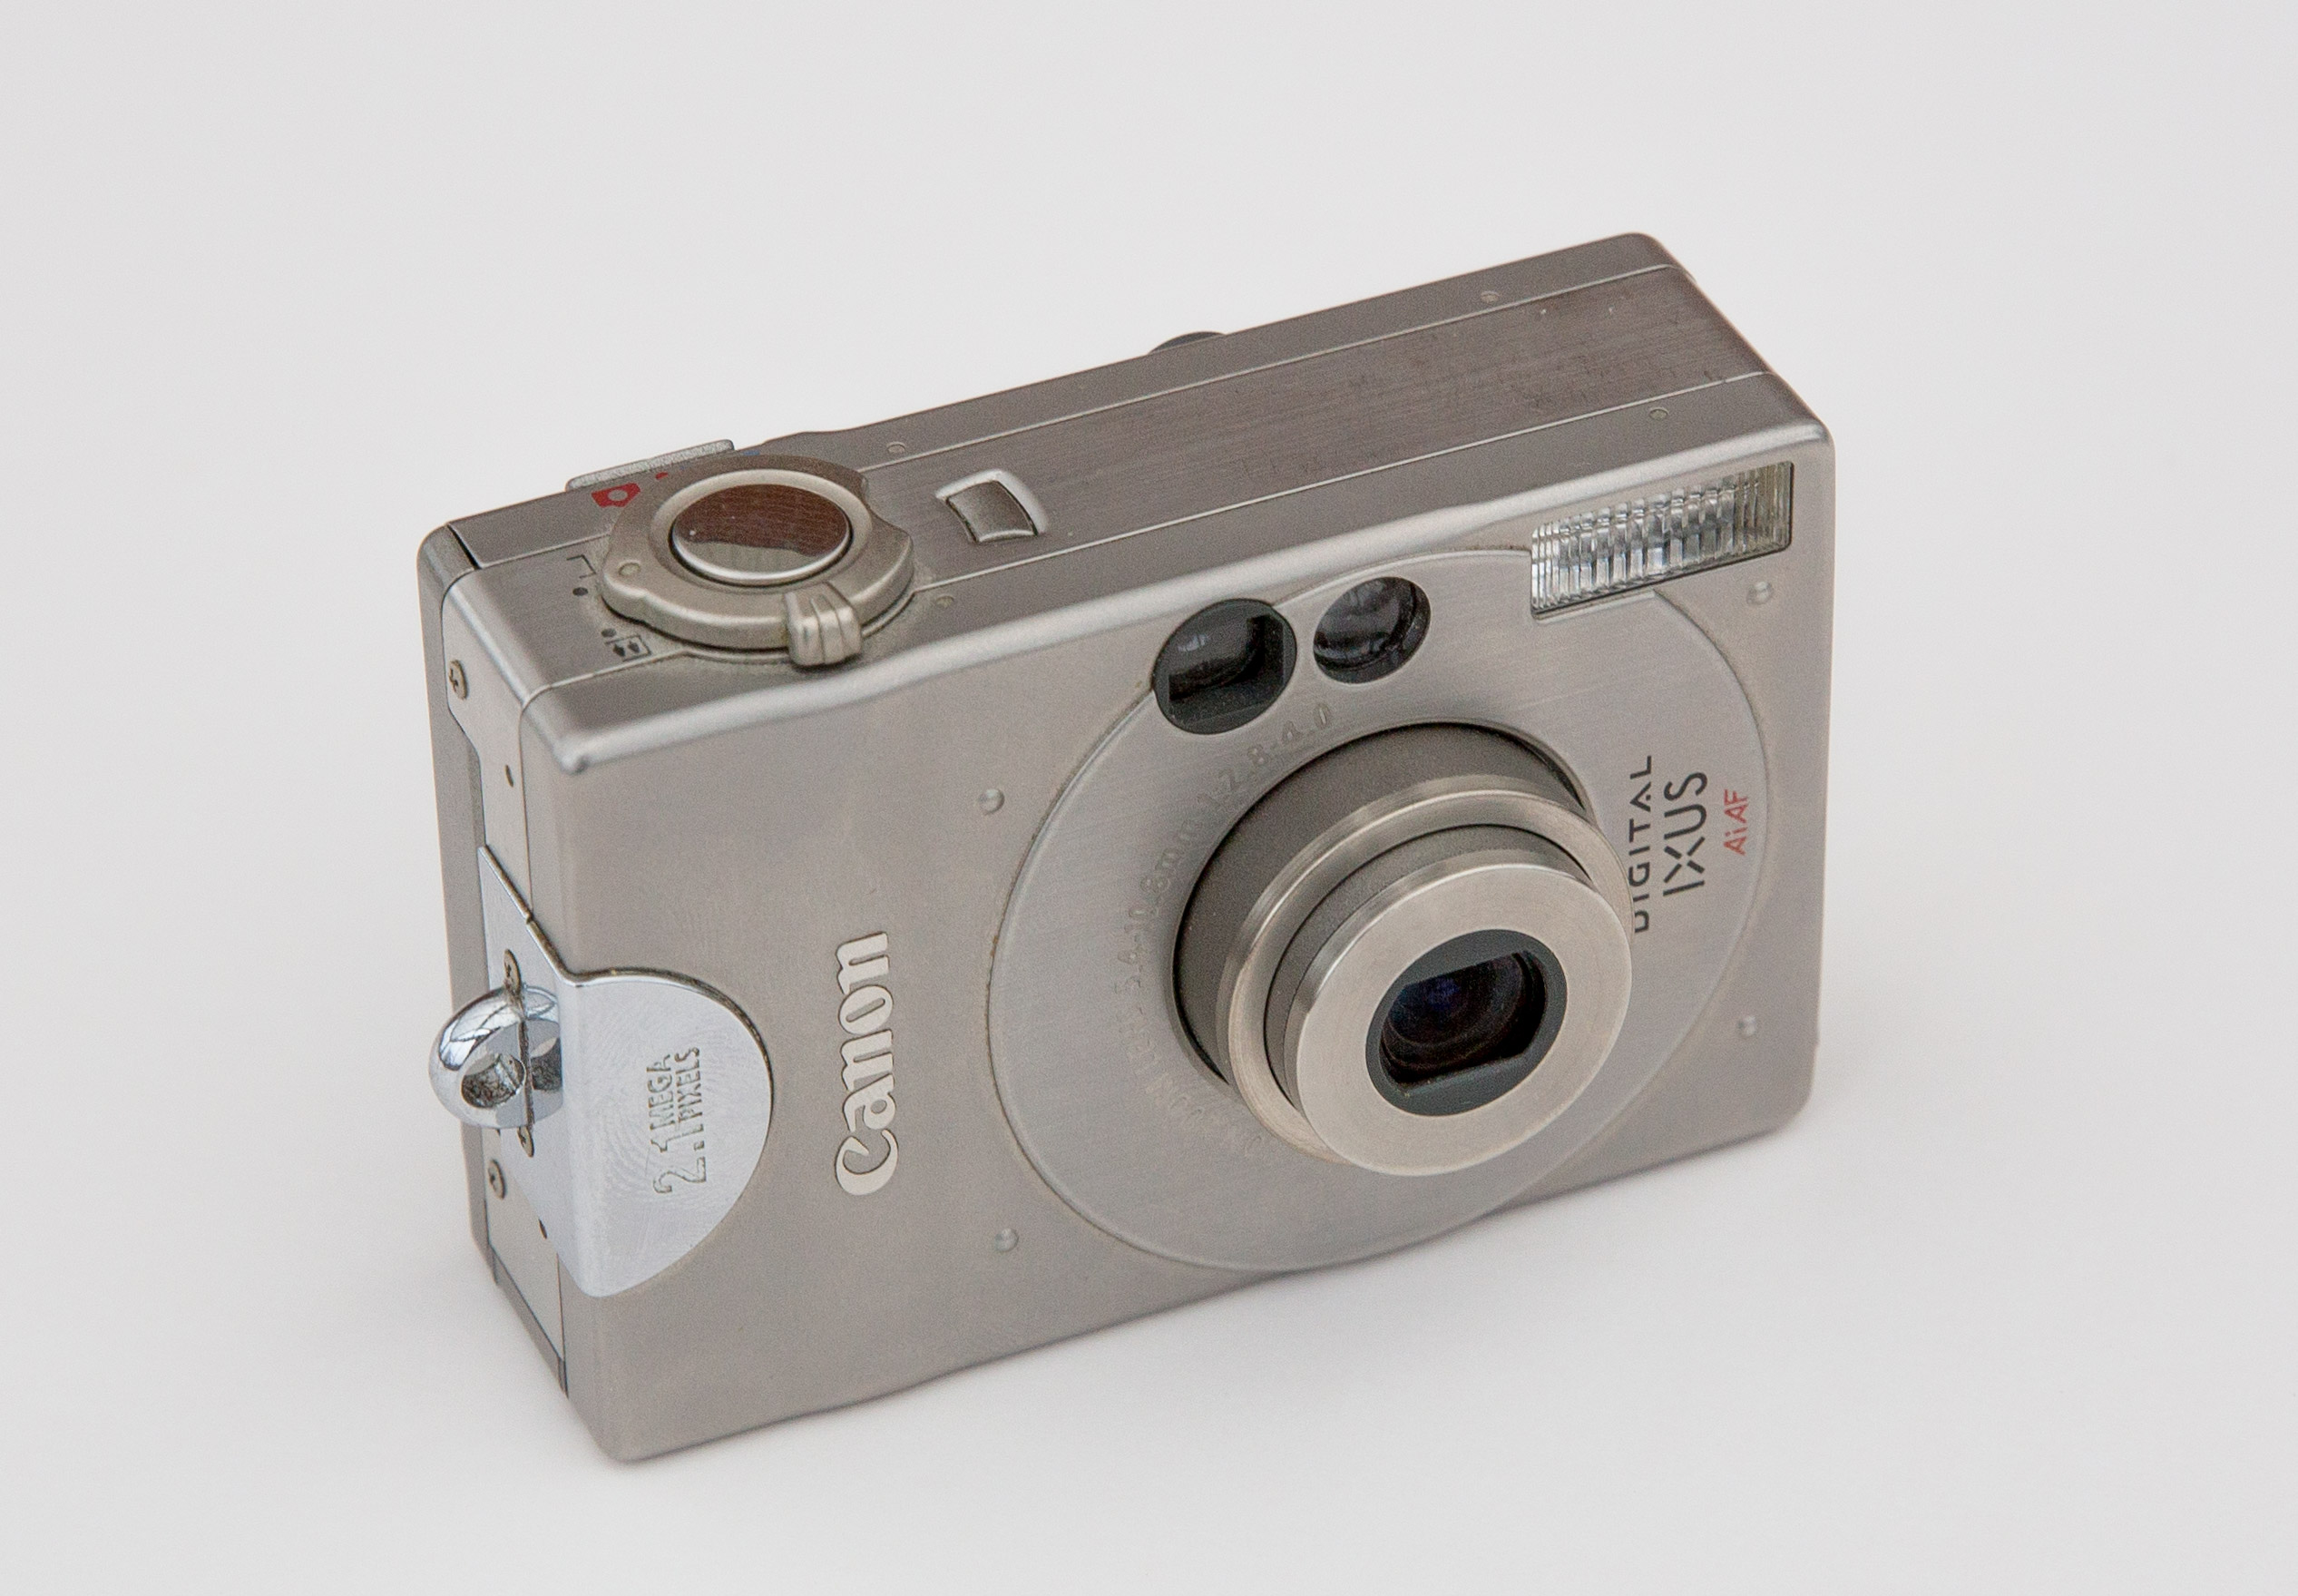 Canon Digital IXUS - Wikipedia